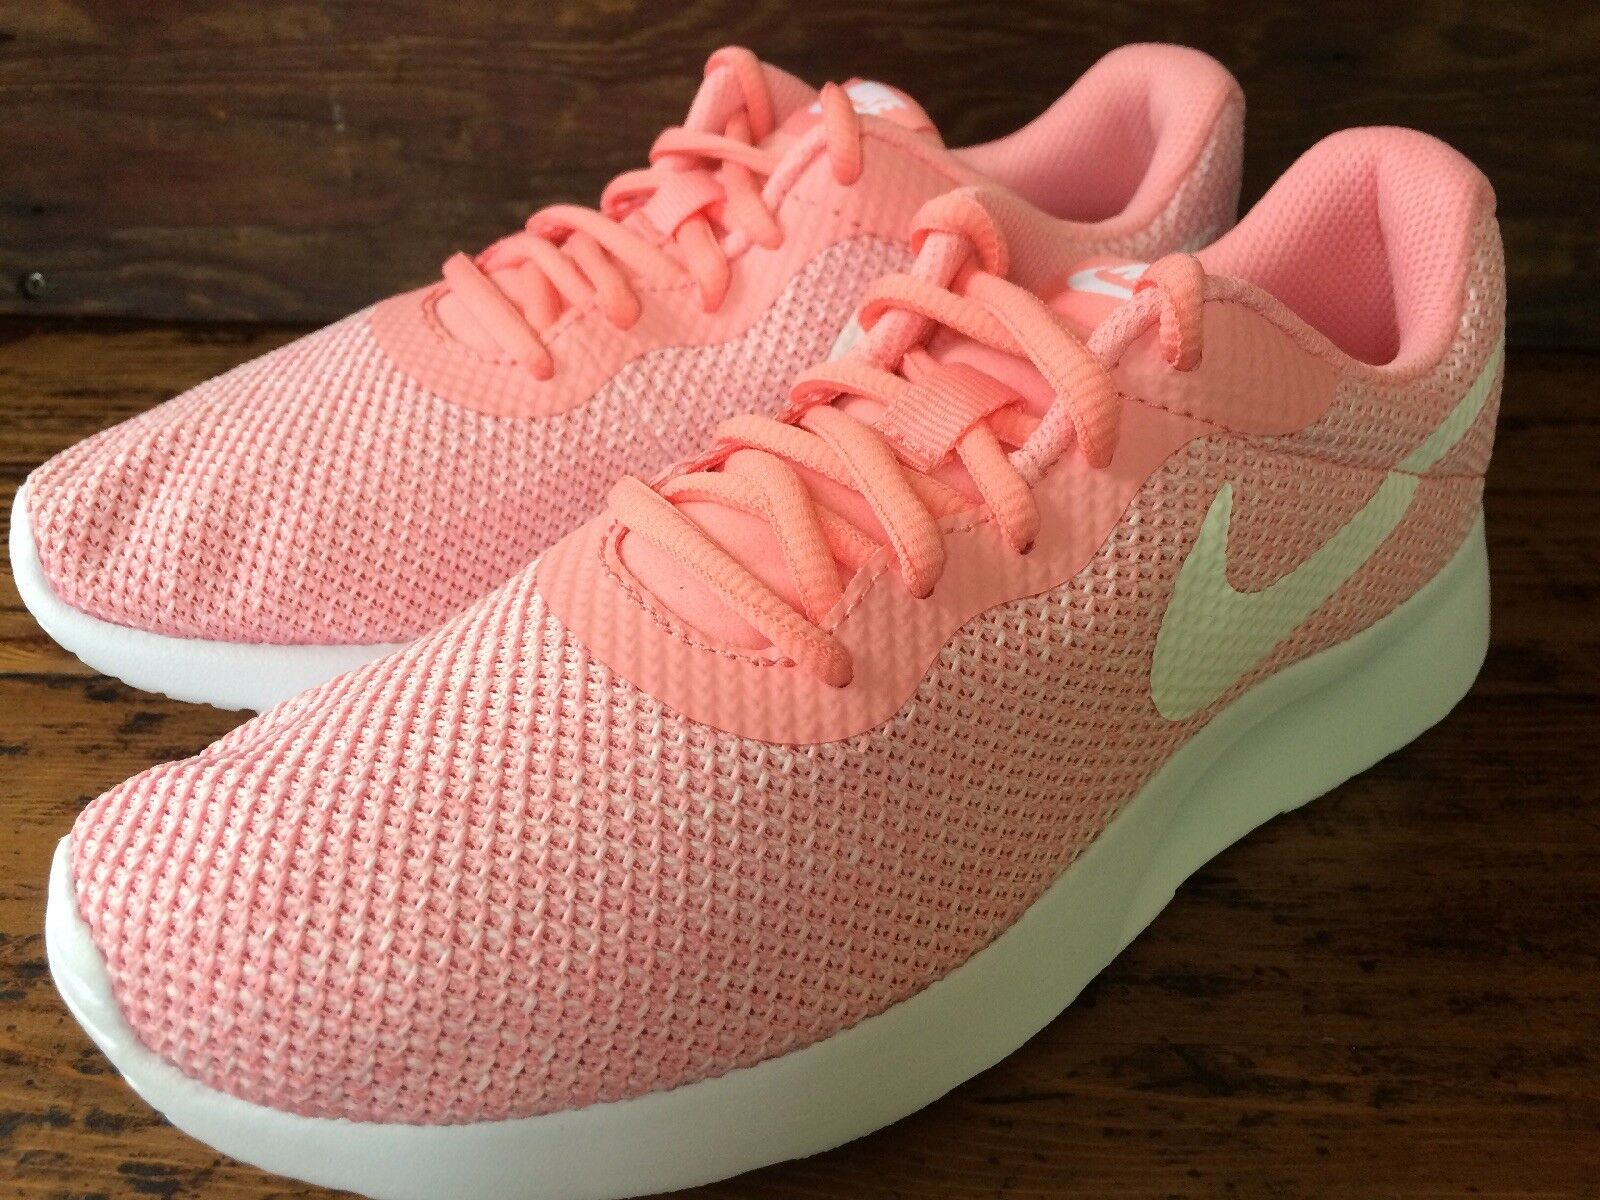 Size 6 Womens Tanjun Lightweight Running shoes Bright Melon White Pink Sneakers